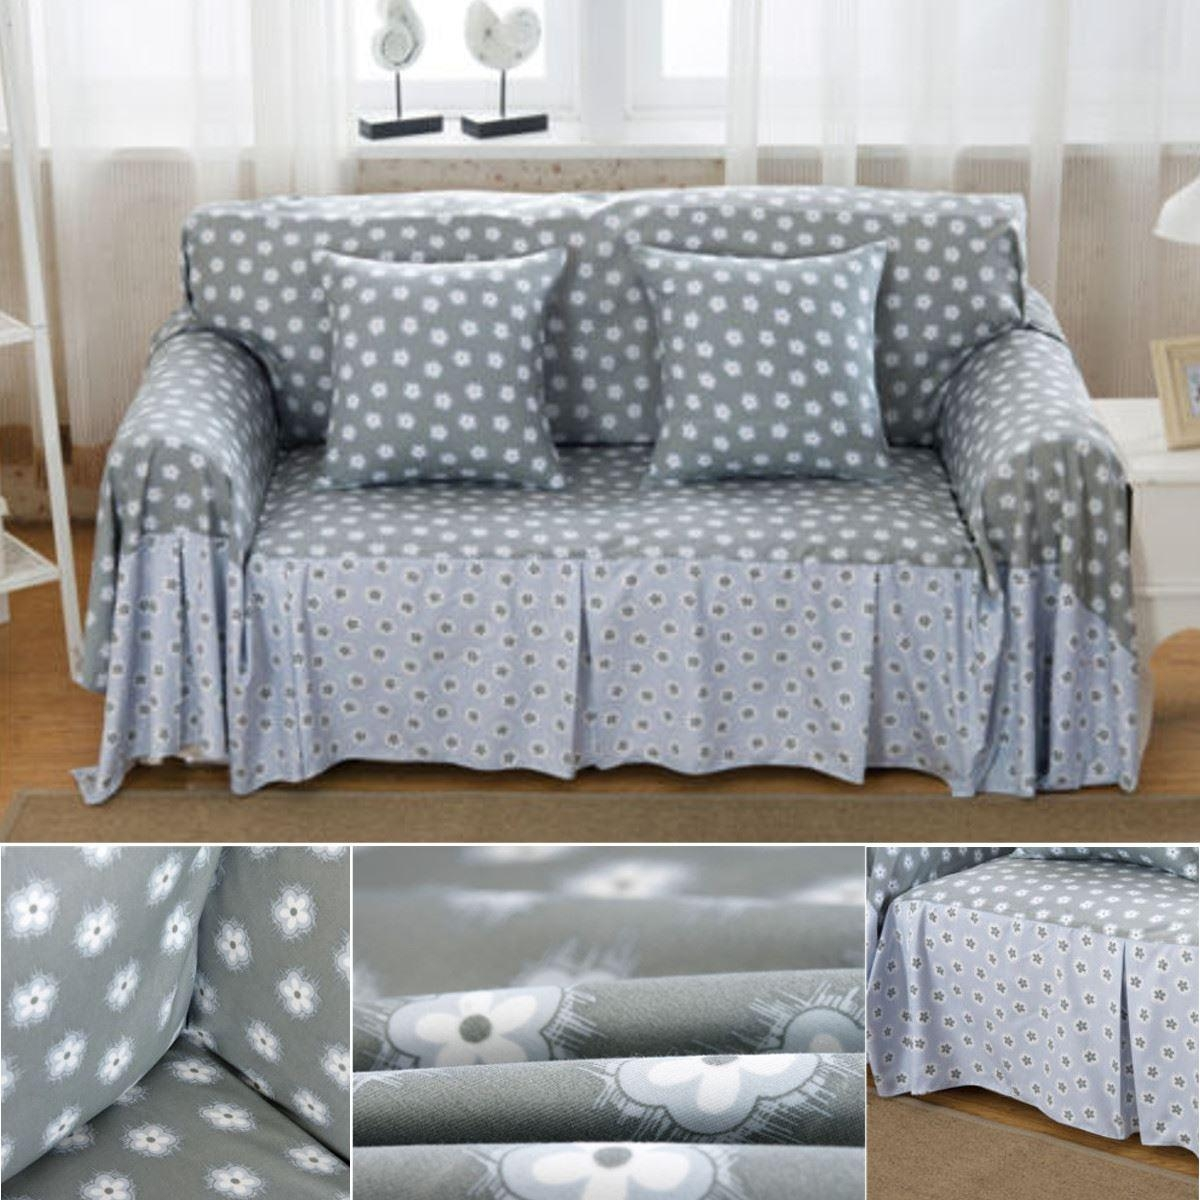 Online Get Cheap Slipcover Sets Aliexpress | Alibaba Group In 3 Piece Slipcover Sets (View 8 of 20)